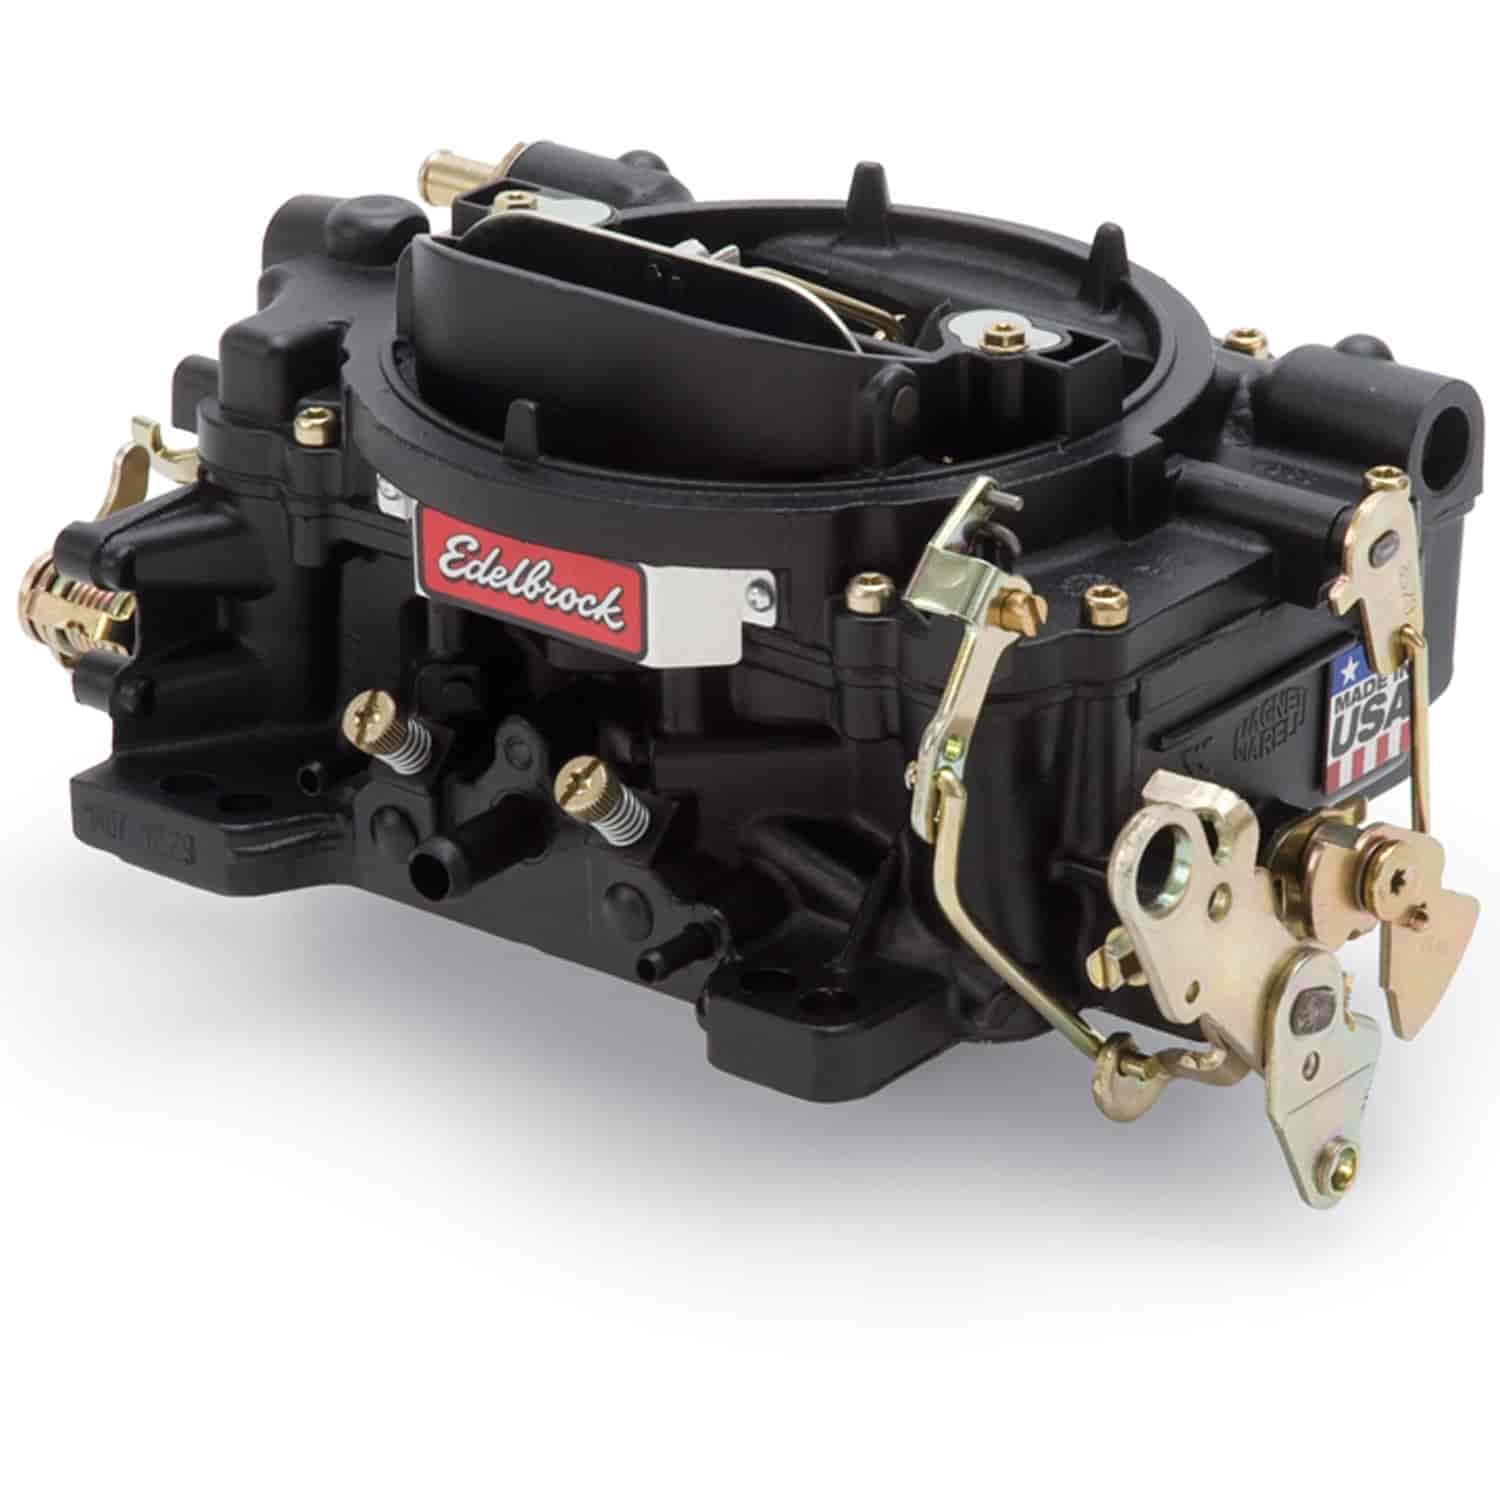 Edelbrock 14073 - Edelbrock Performer Carburetors